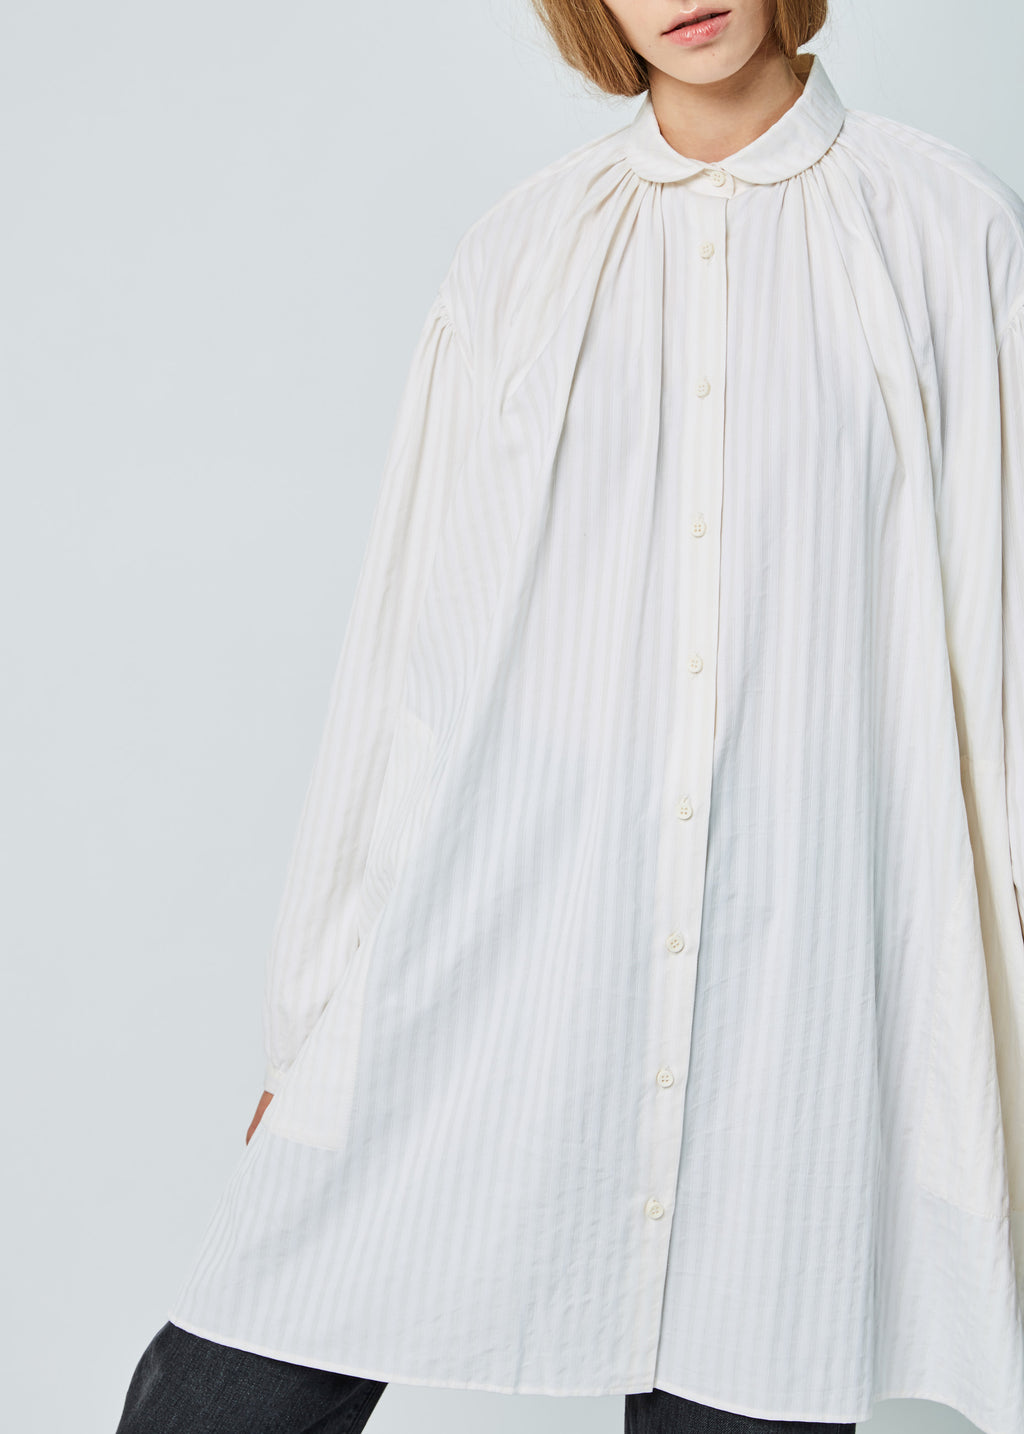 Tomasa Oversize Button-Up Shirt